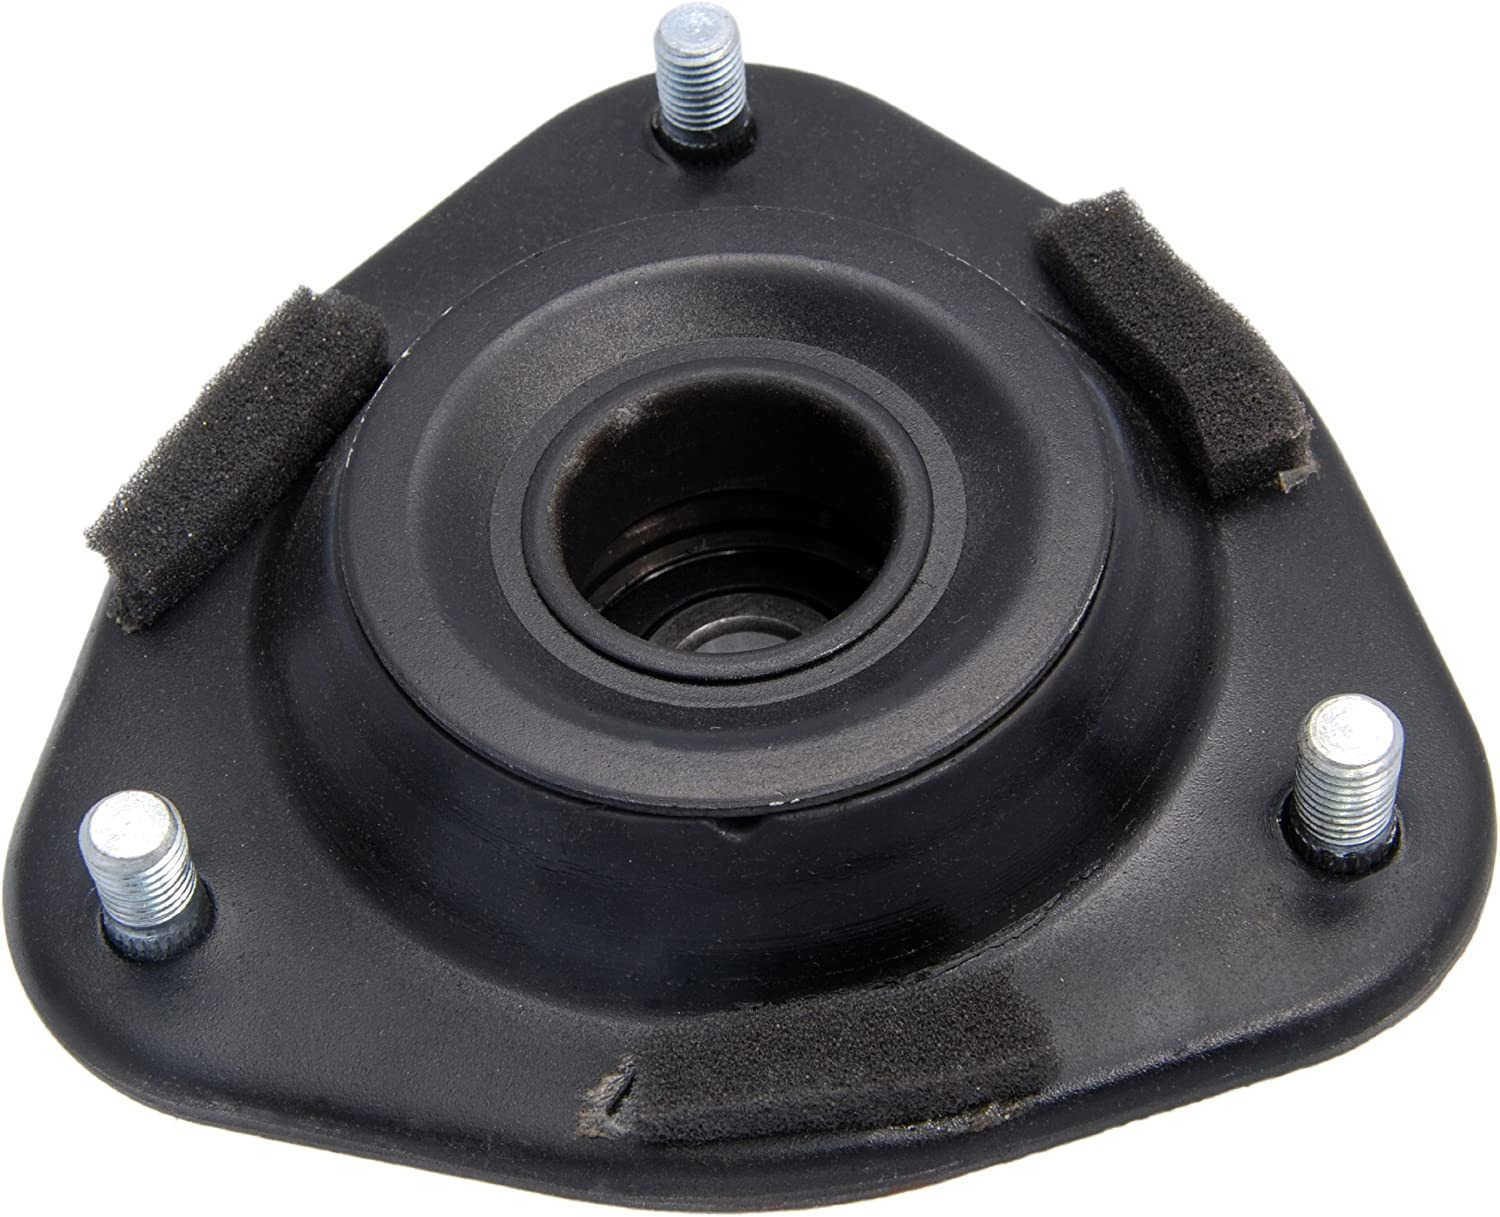 4860963010 - Brand Cheap Sale Venue Front Shock Selling Absorber Toyota Support For